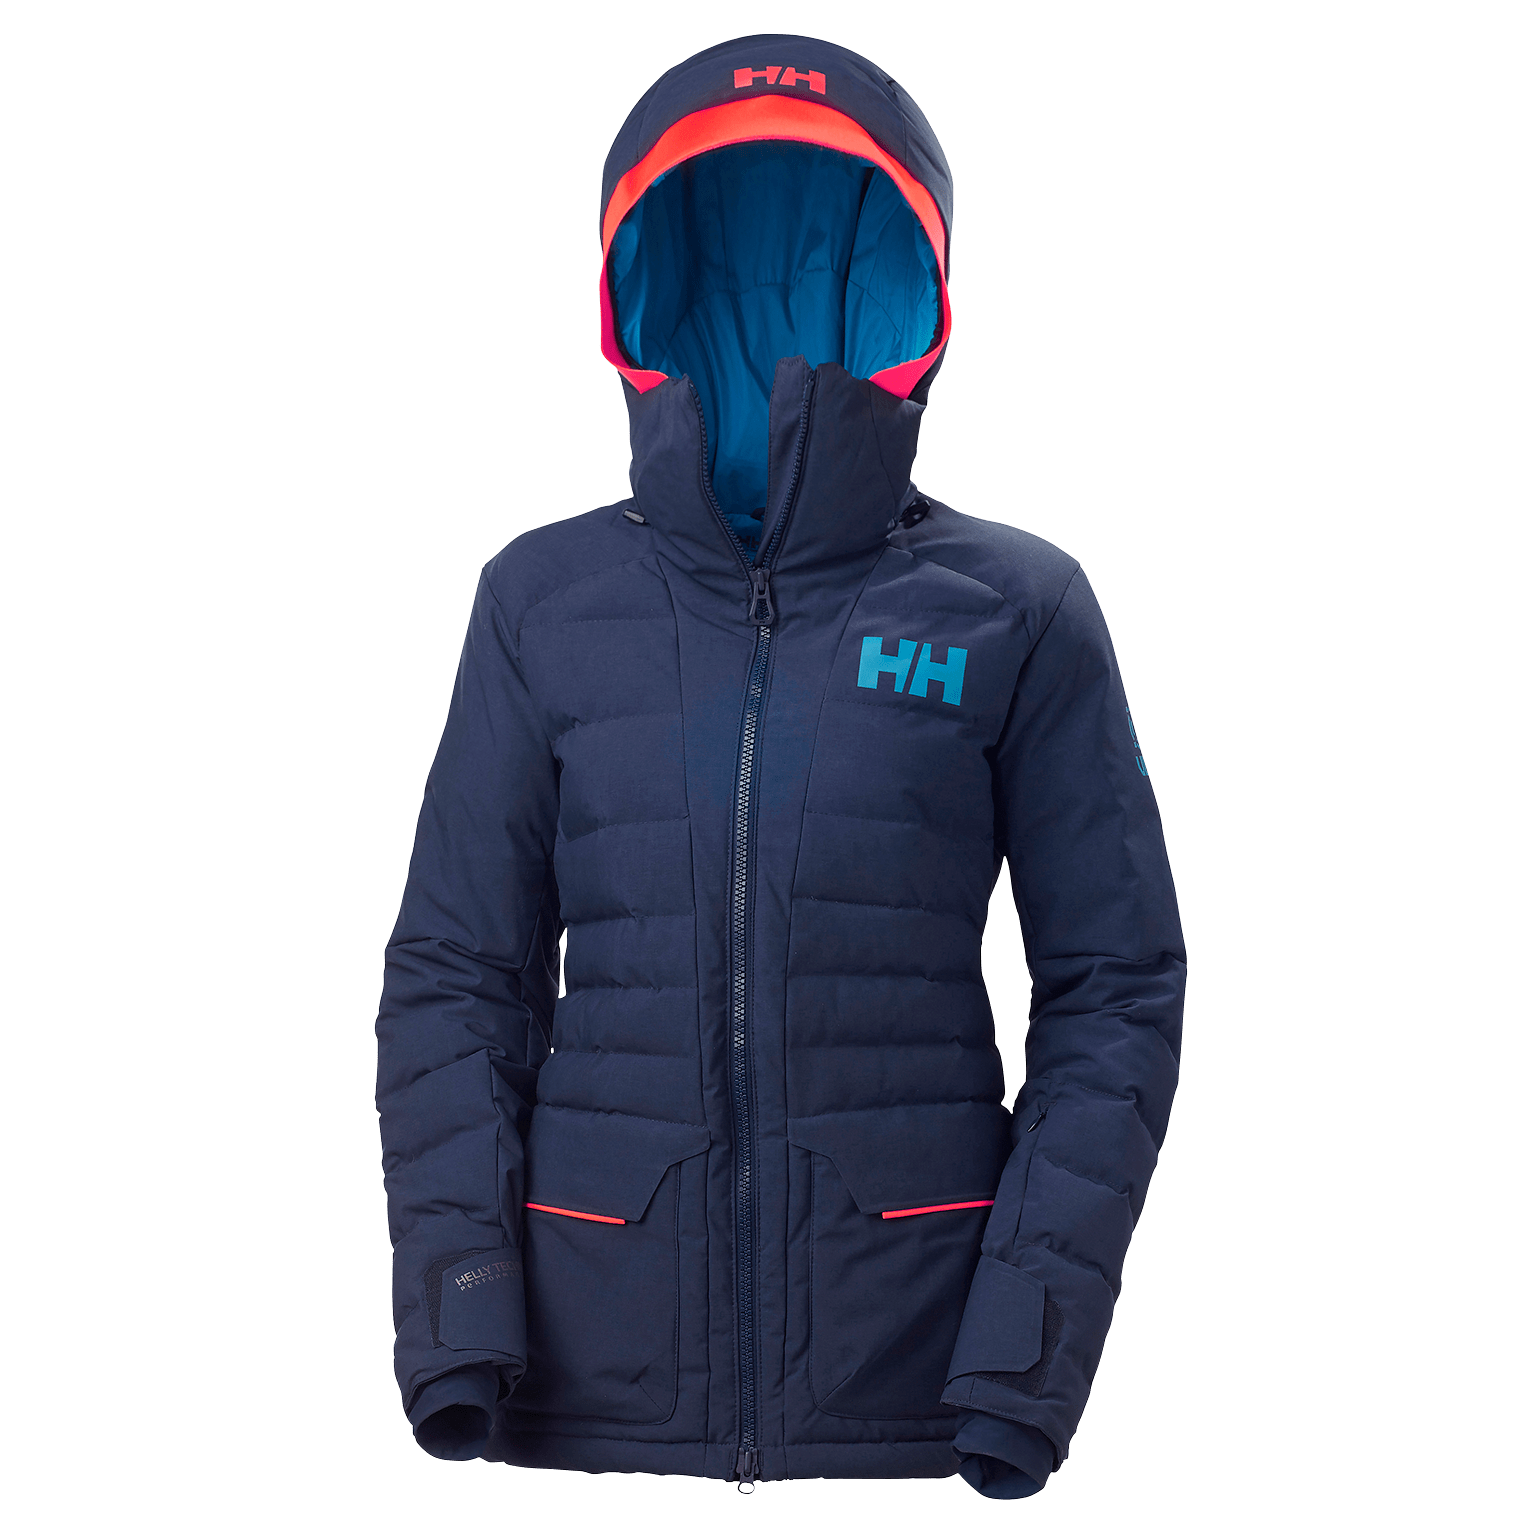 Helly hansen cordelia jacket gear review busted wallet png 1528x1528 How  much are helly hansen jackets 321bc46ef